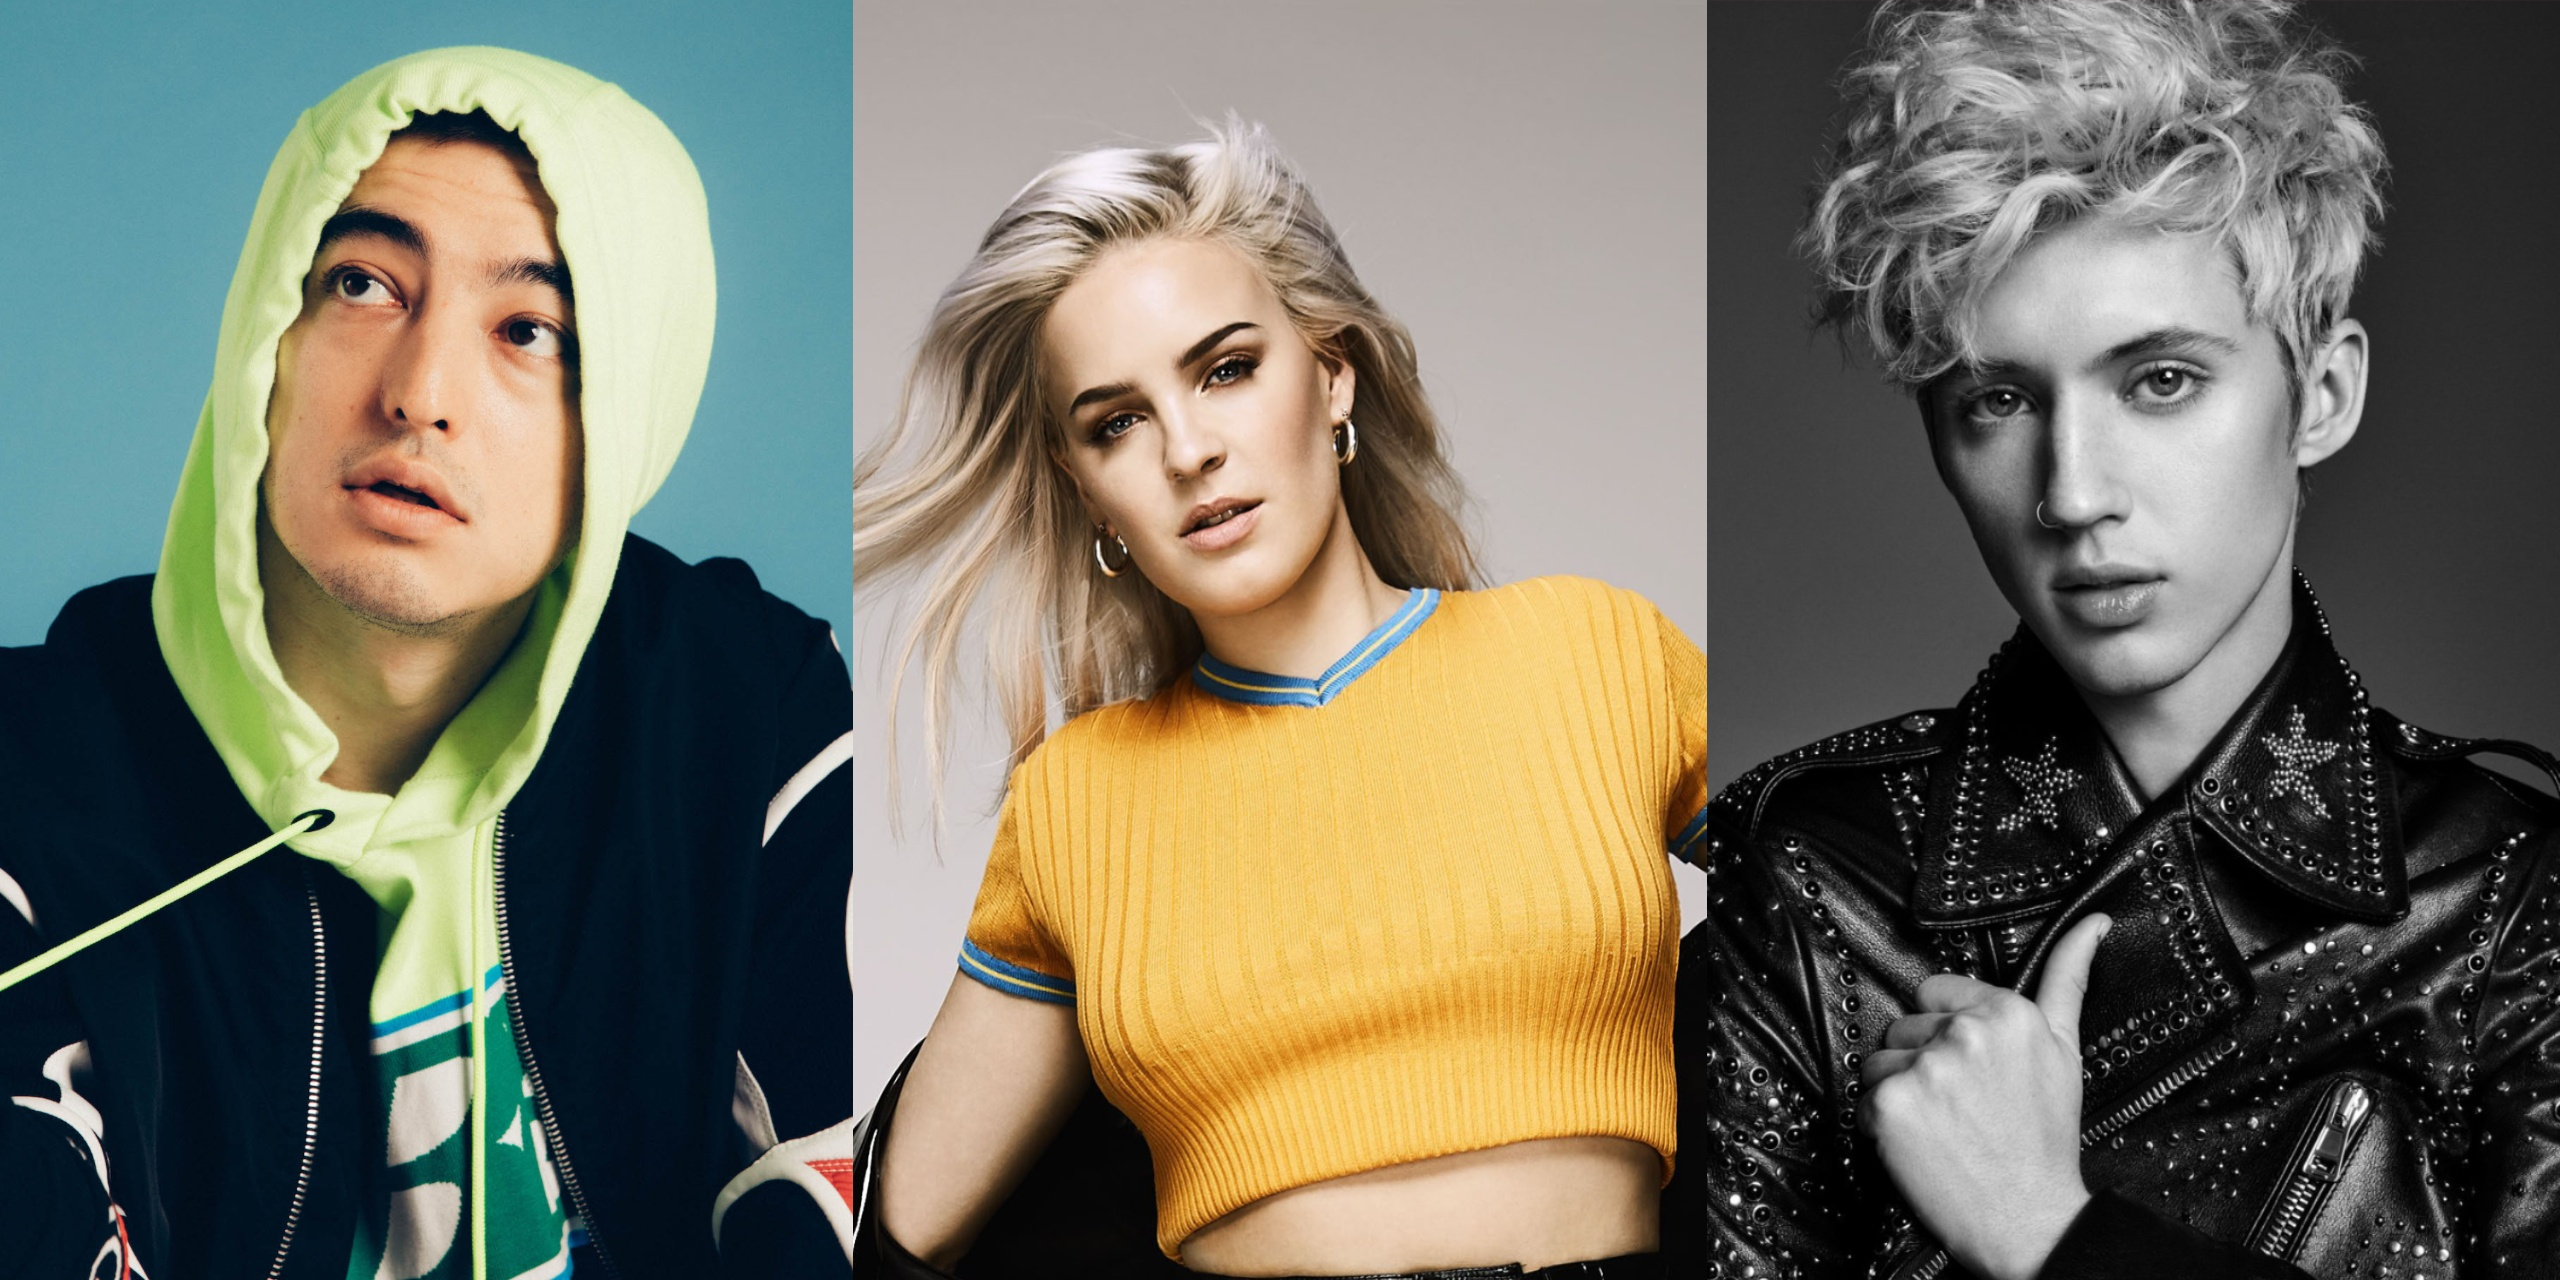 BREAKING: We The Fest announces Phase 2 line-up – Joji, Troye Sivan, Anne-Marie and more confirmed